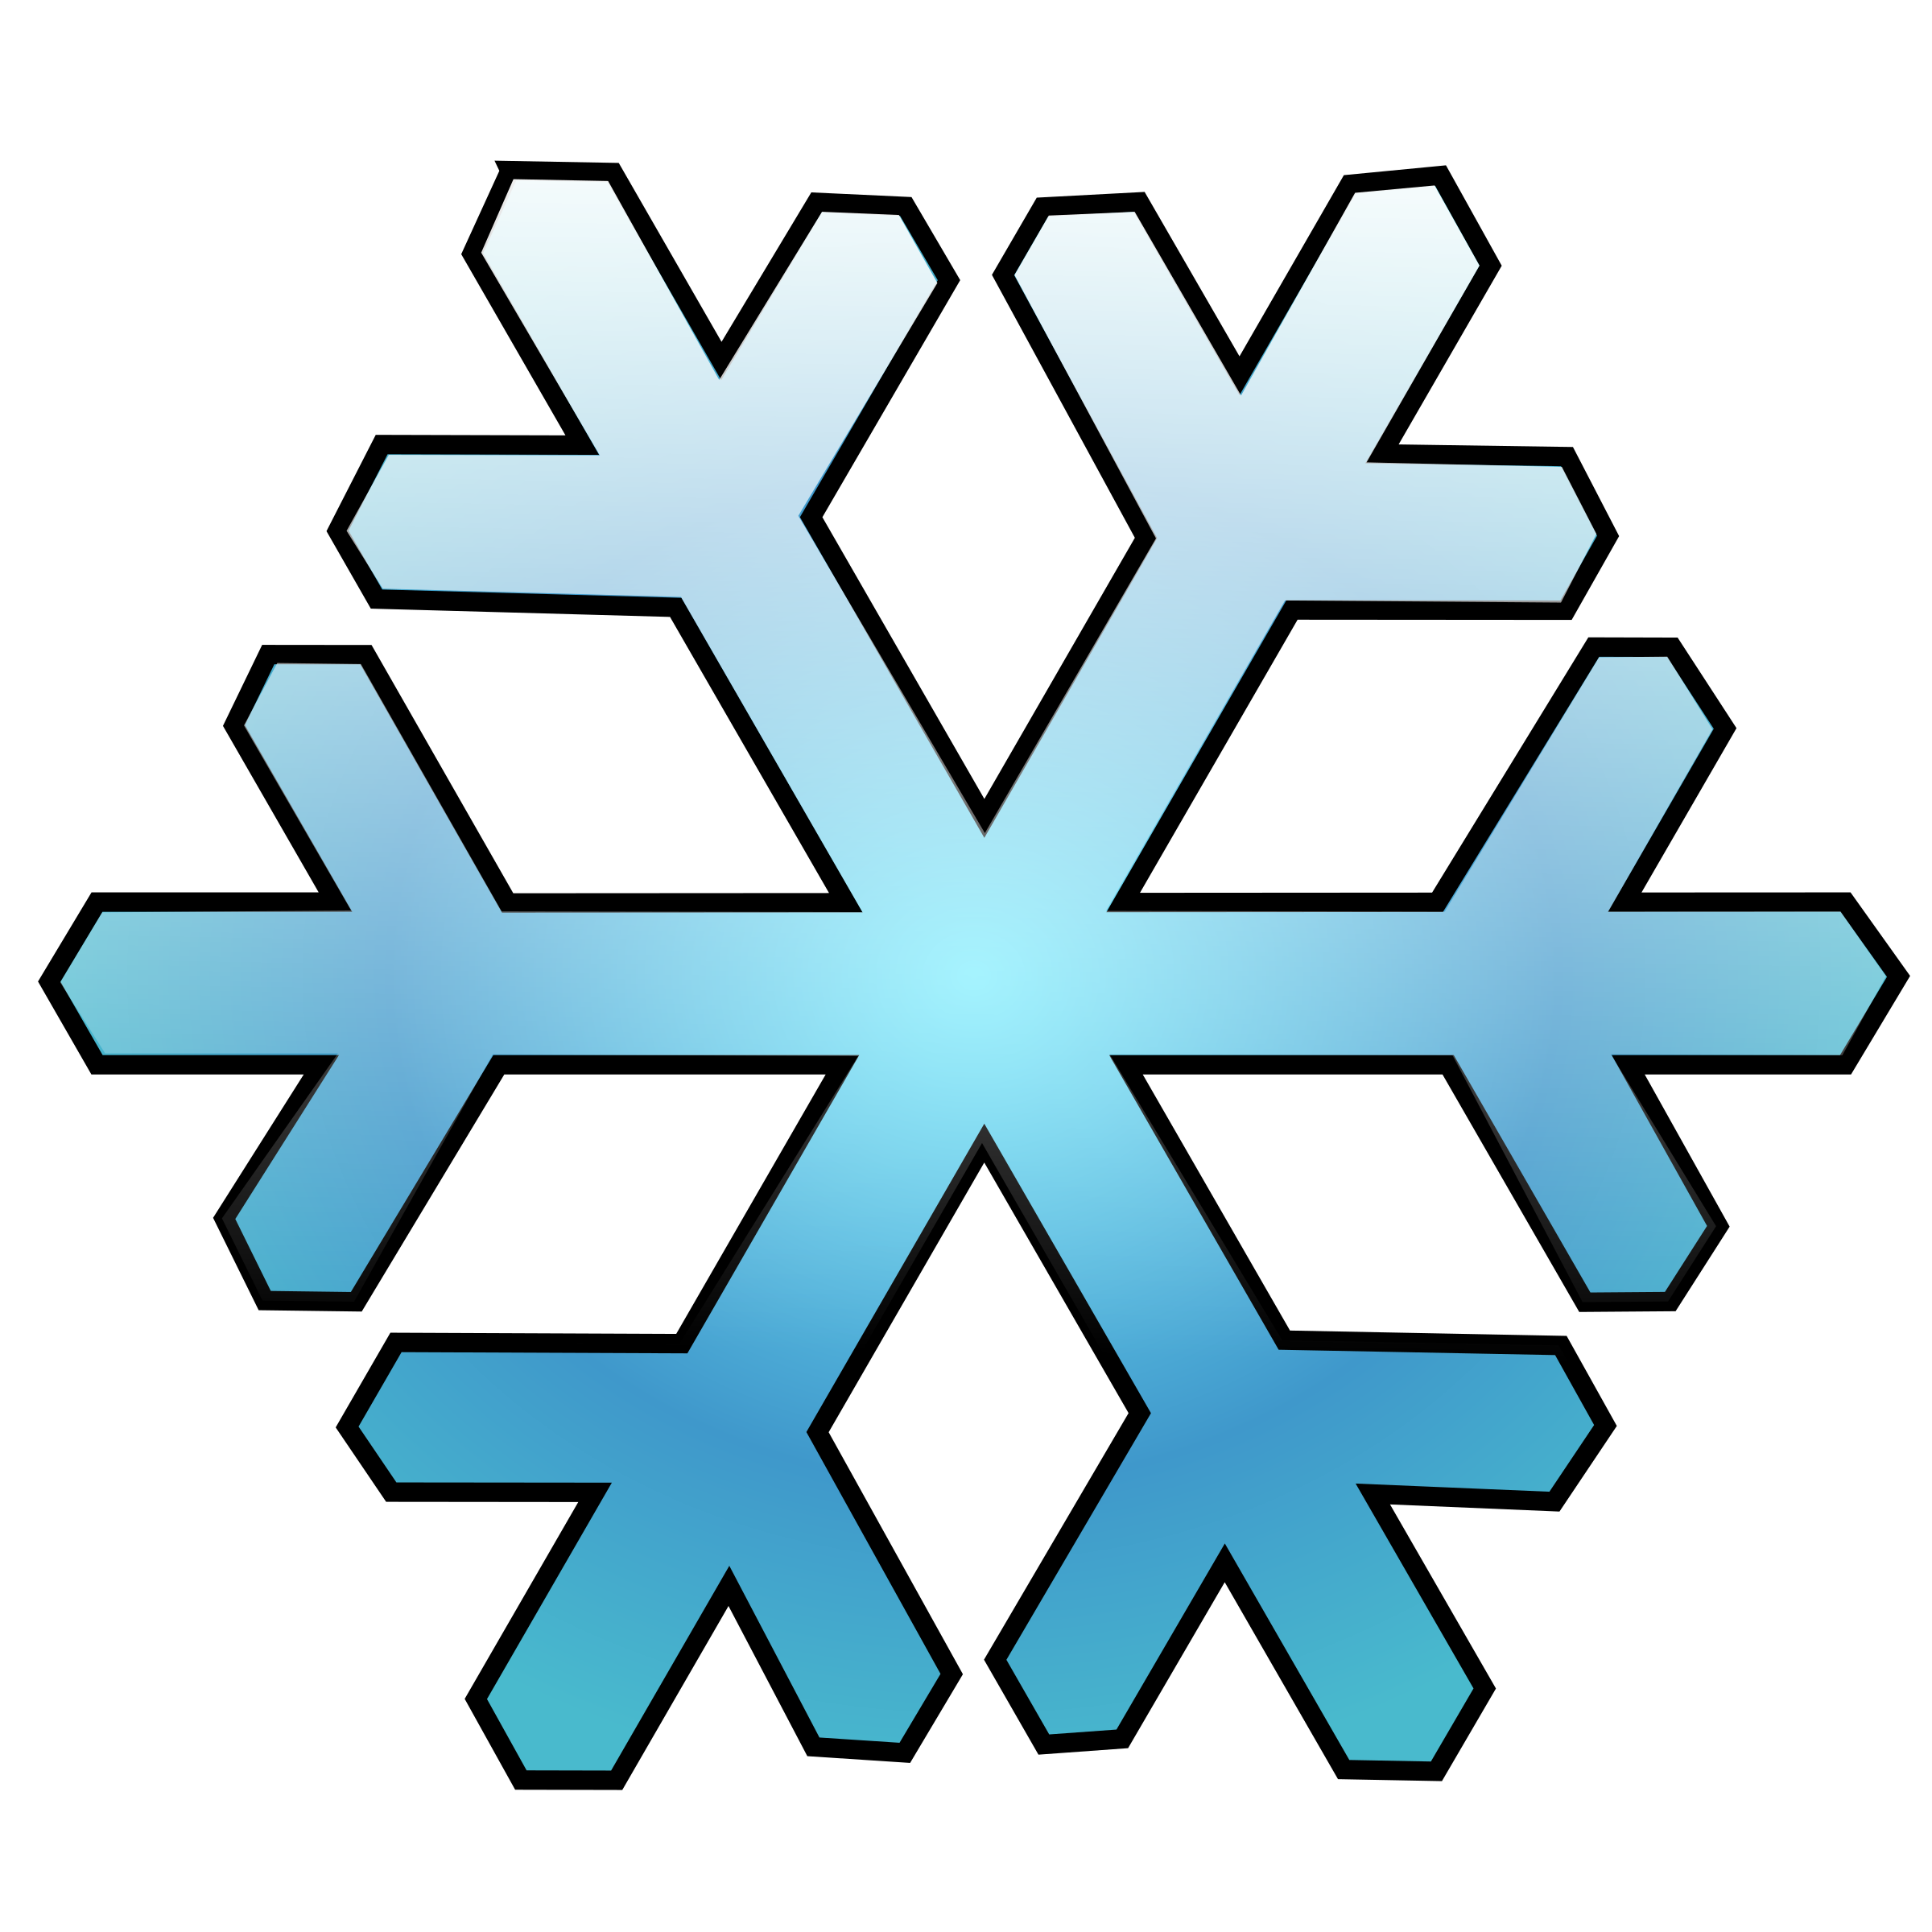 Prset vector simple. Clipart snowflake big image